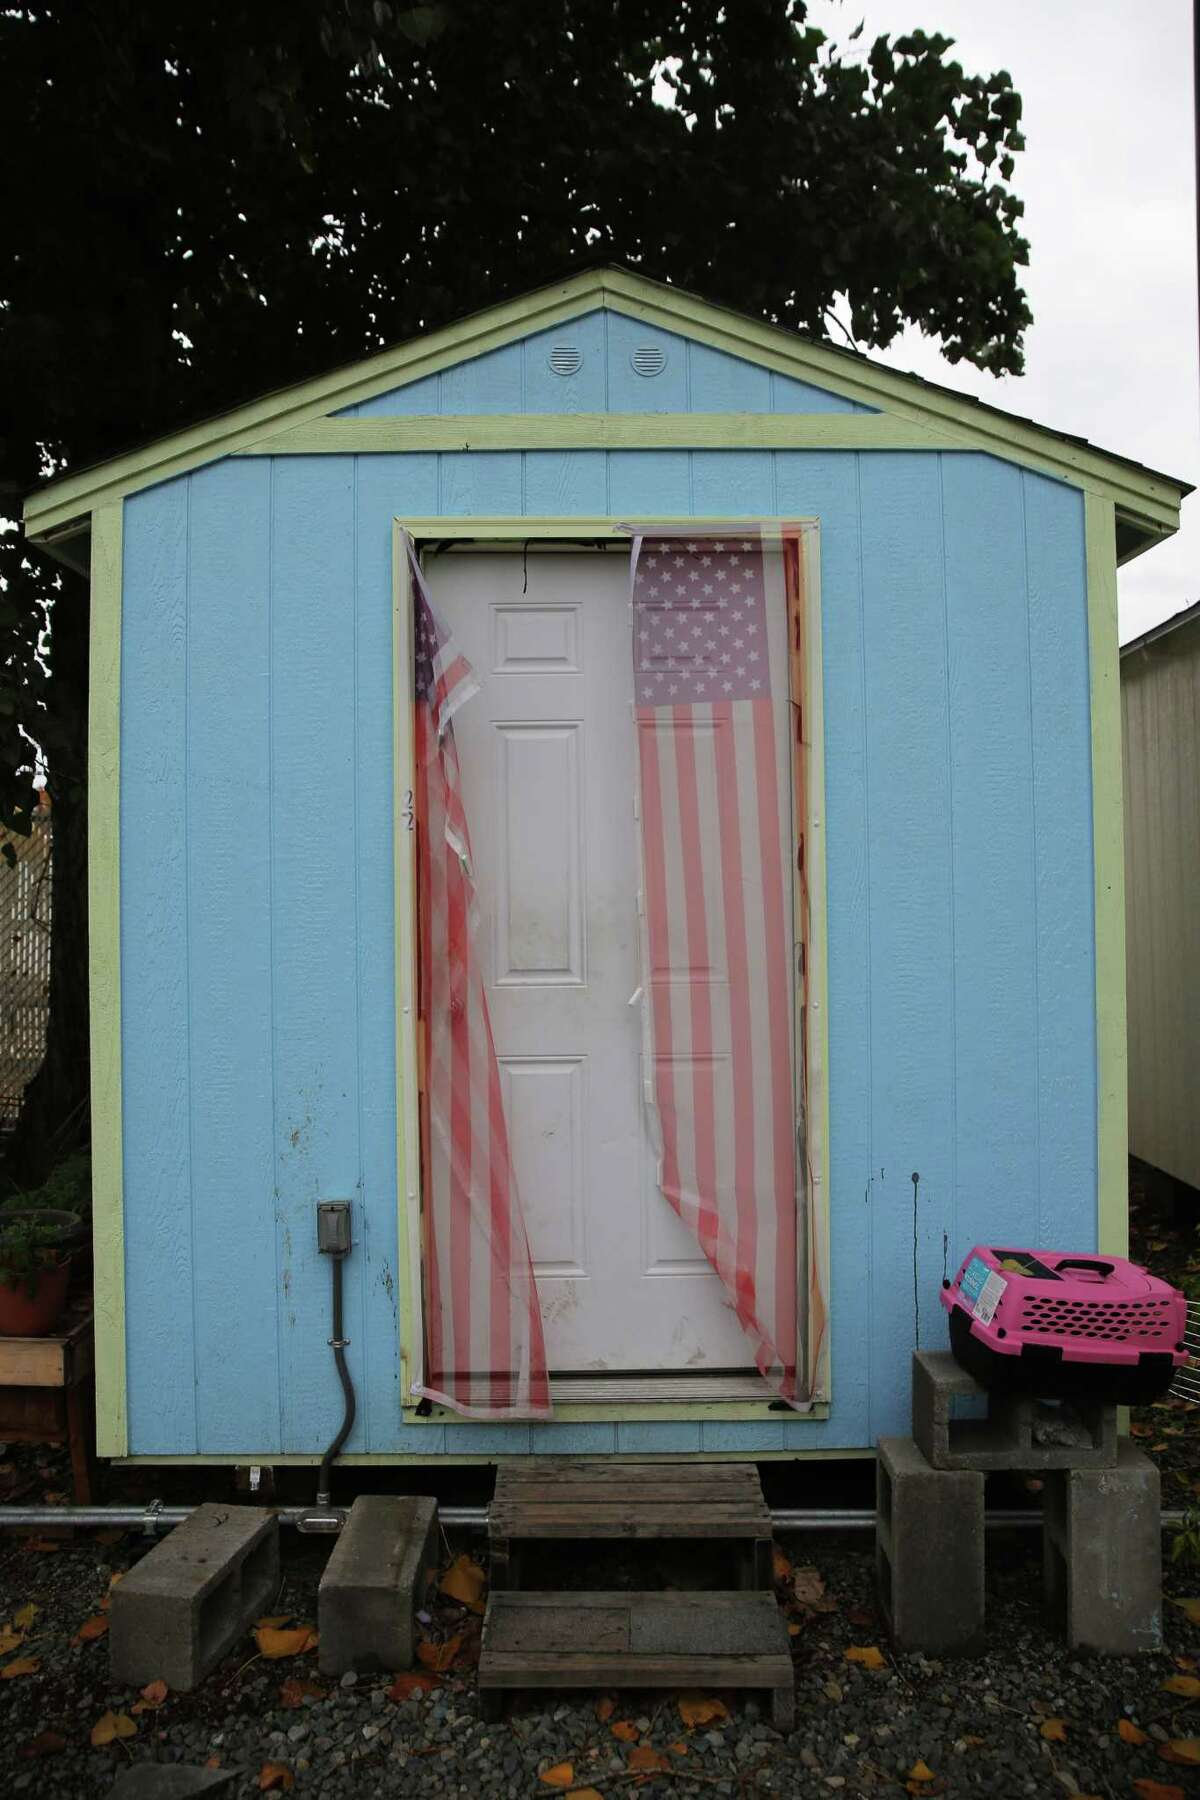 The door of a tiny house at Nickelsville Georgetown is decorated with an unzipped American Flag screen, Oct. 29, 2018.